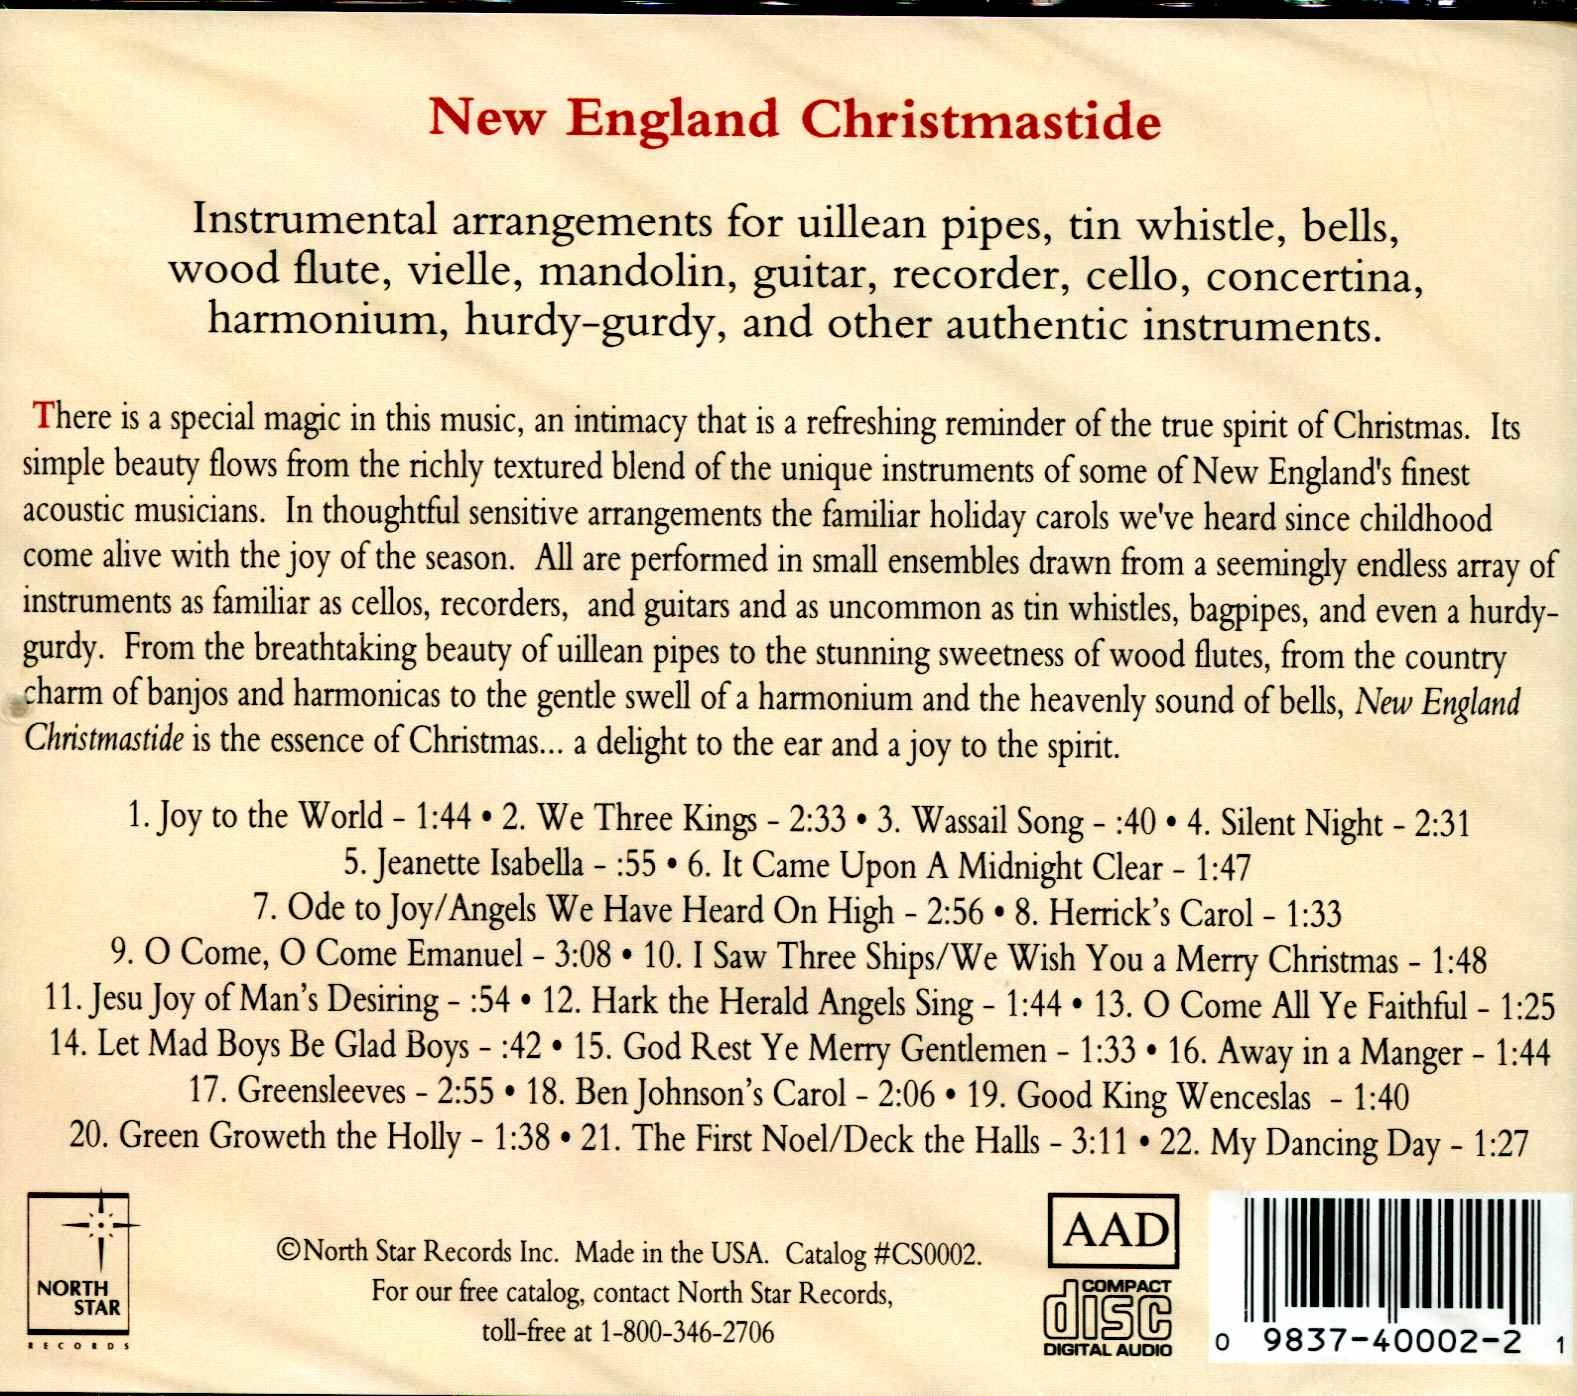 New England Christmastide by North Star